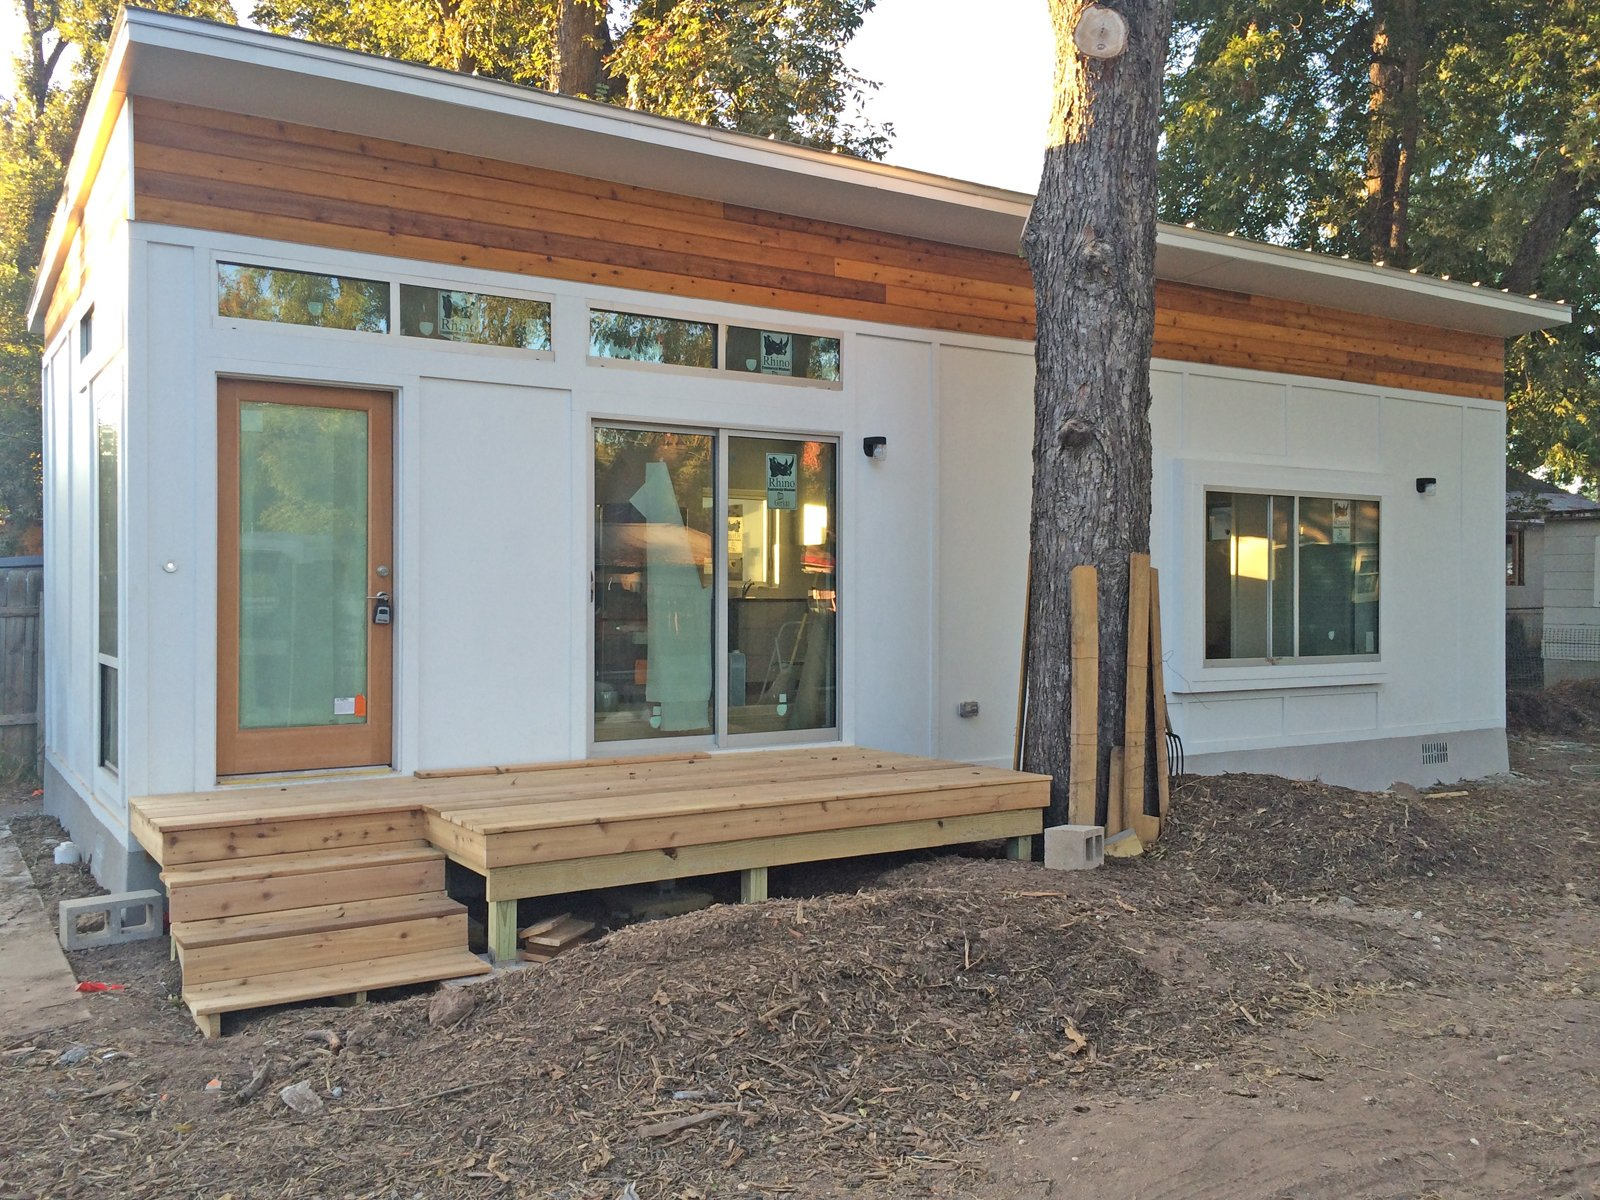 """At 550 square feet, Ma Modular's """"Grand Ma"""" model is one of the larger modular homes under $200K on our list. Prices vary—modular home prices in Texas for this model are $225 per square foot, bringing the Grand Ma to about $124,000. Modular home prices in Pennsylvania for the same model are somewhat less, at $118,000. Finally, to own the Grand Ma in Florida, you'll pay about $107,000."""